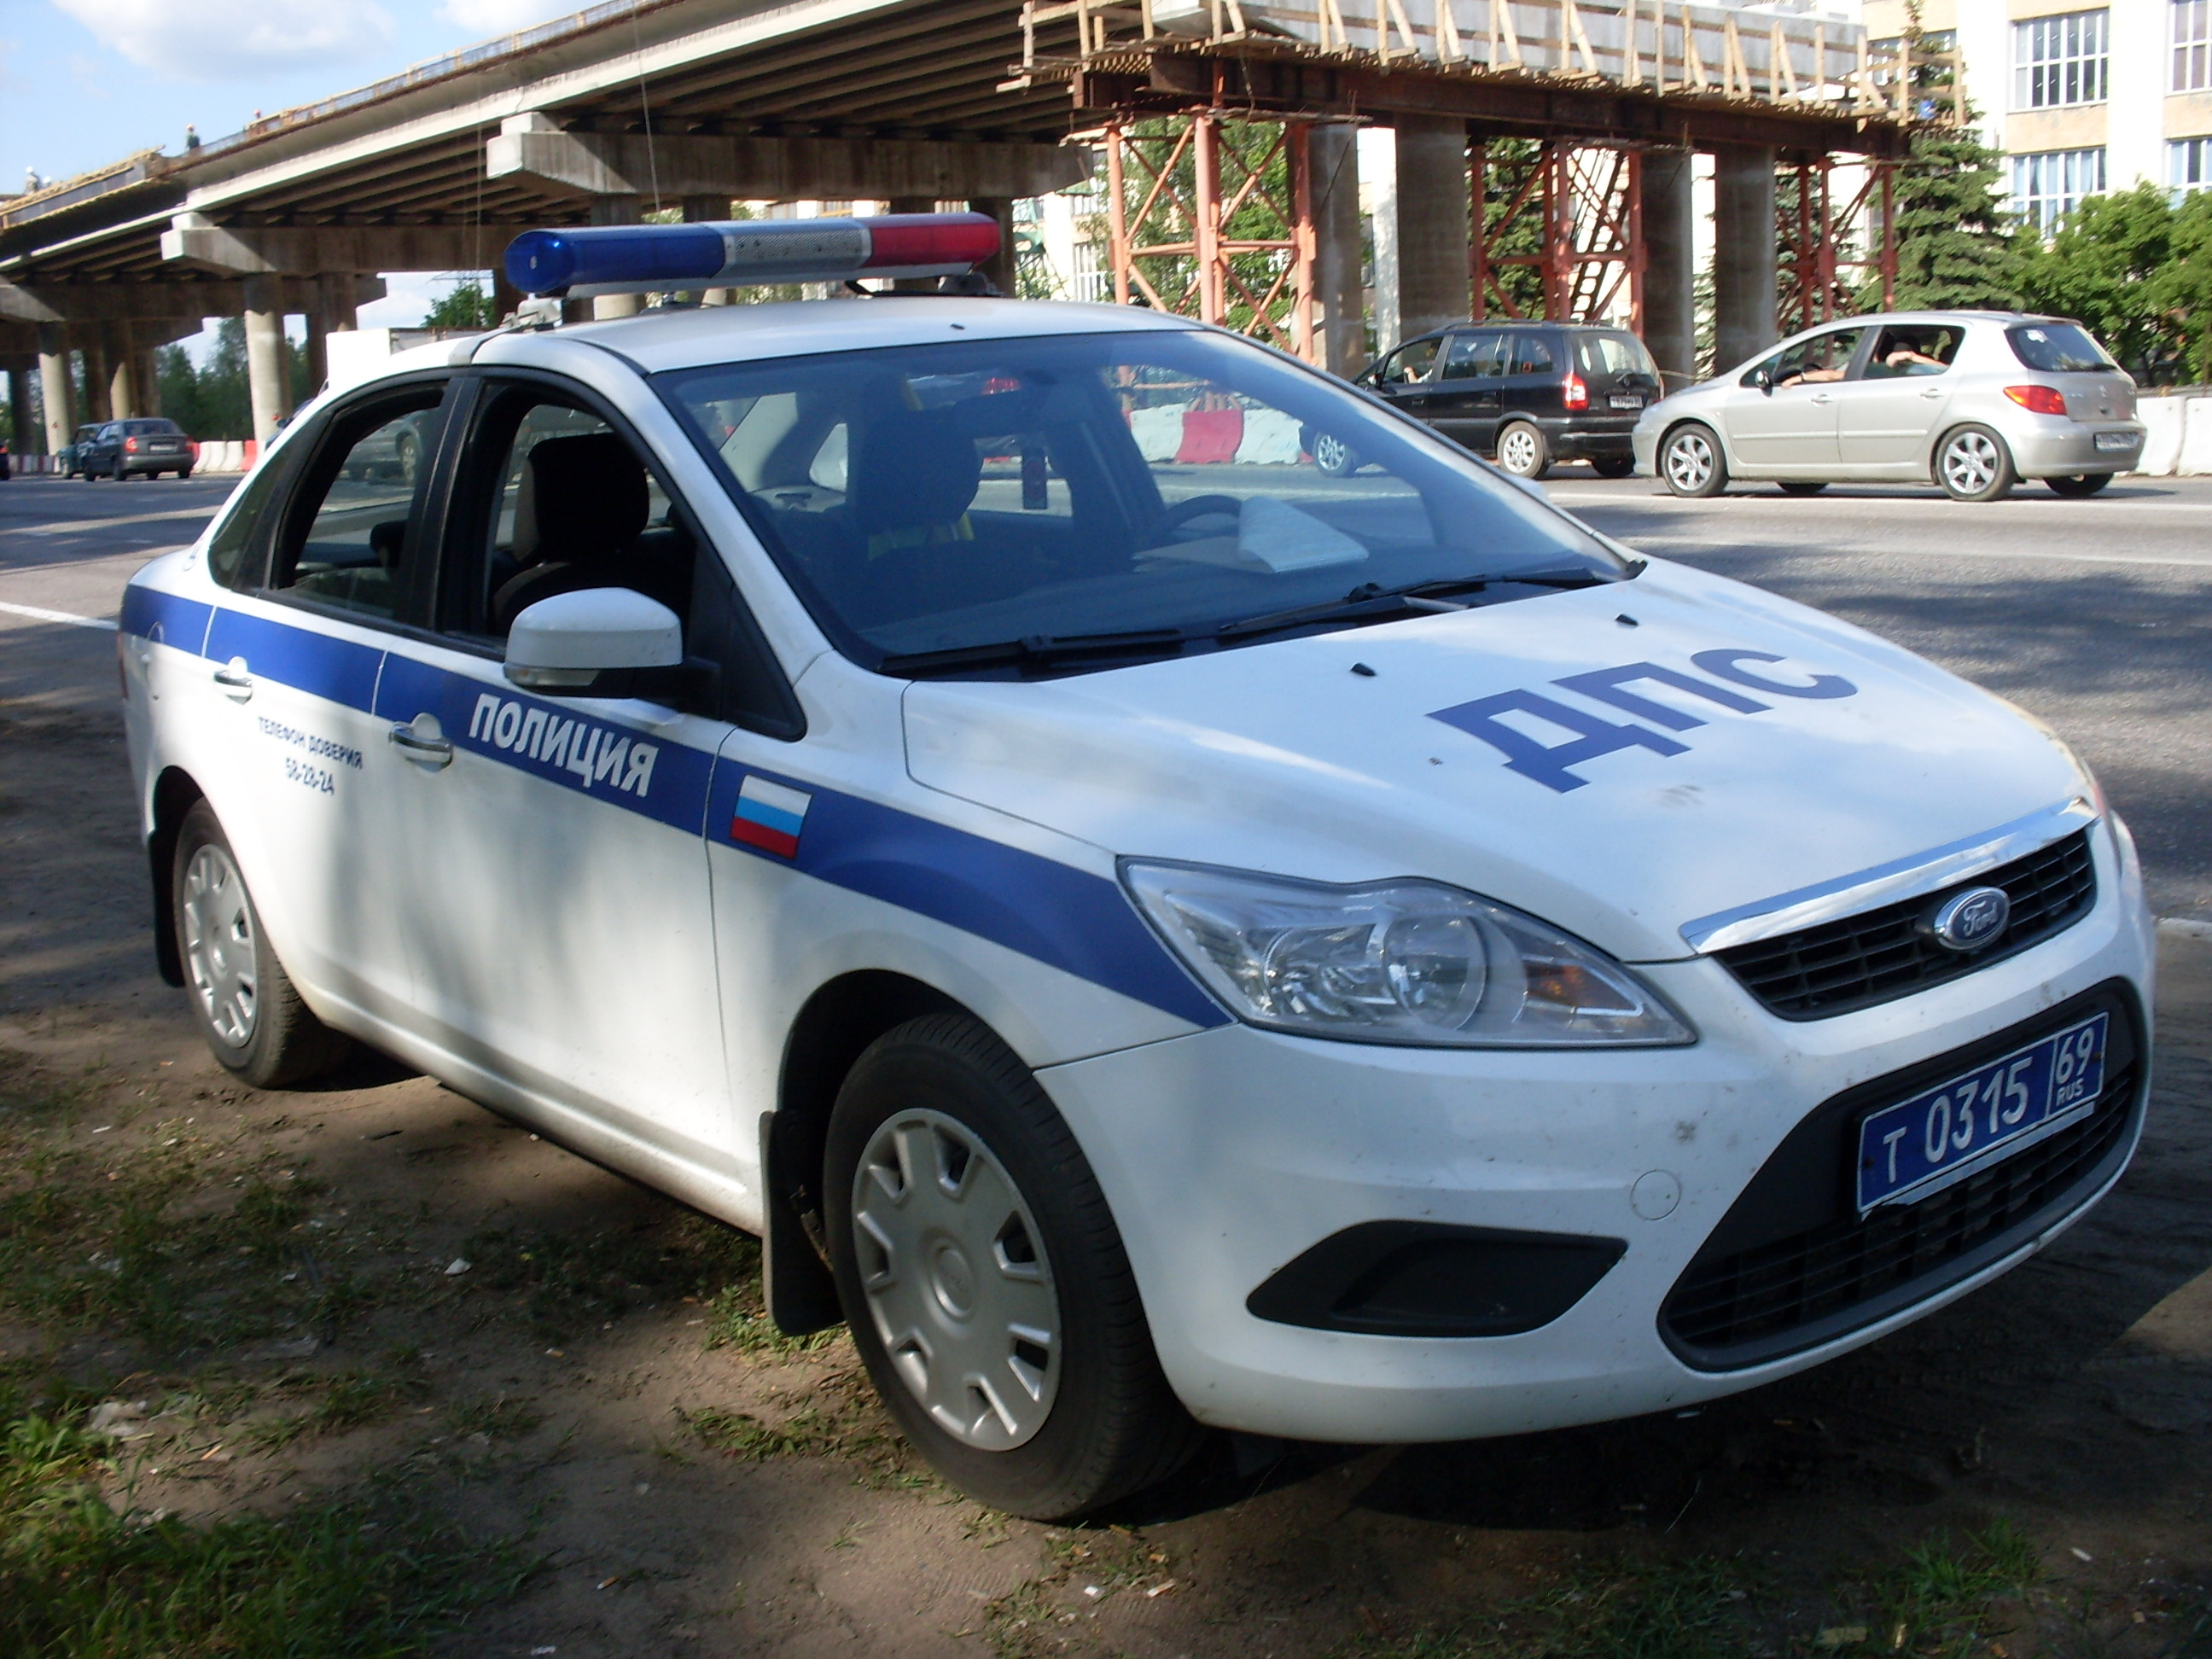 Russian_<b>Police</b>_car_Tver.jpg